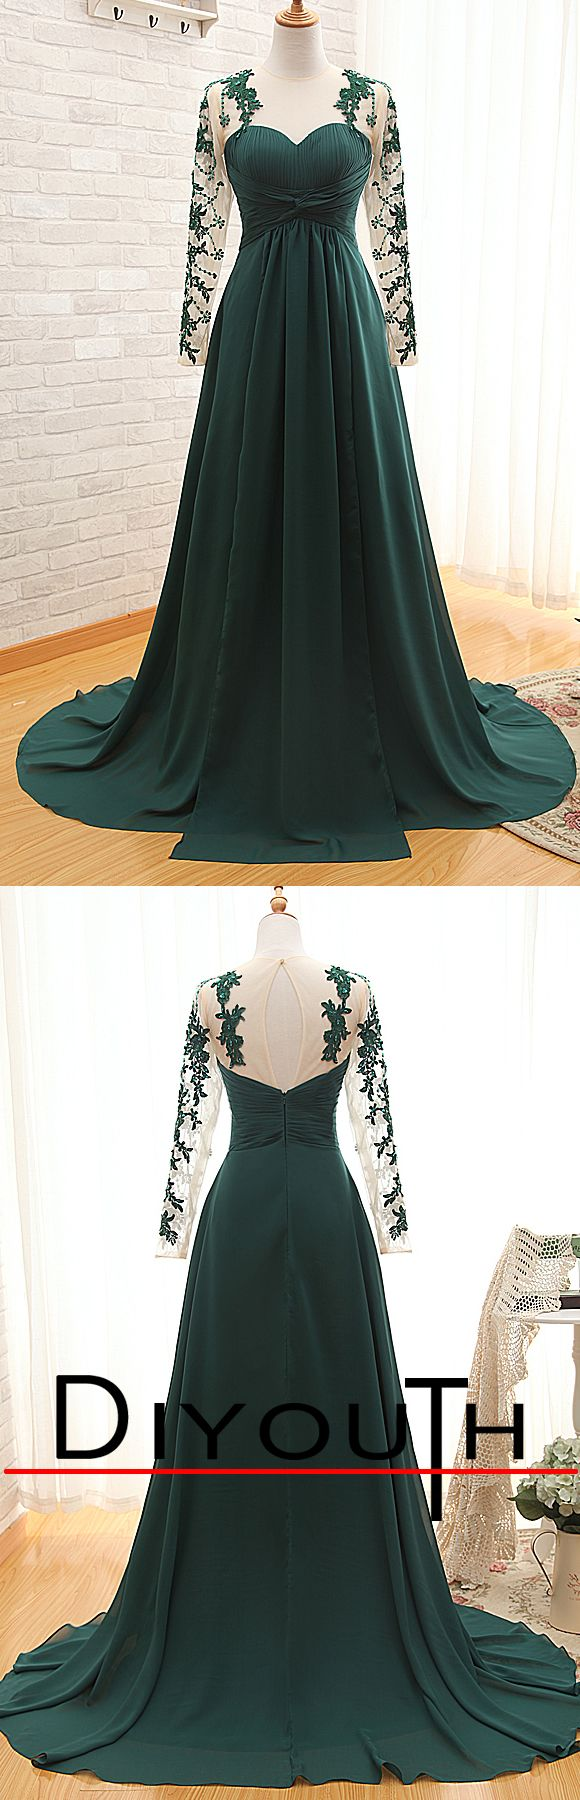 Elegant Emerald See through Lace Long Sleeve A Line Long Prom Dresses 2015,  #Seethrough long evening dress, beautiful cocktail dresses  #diyouth